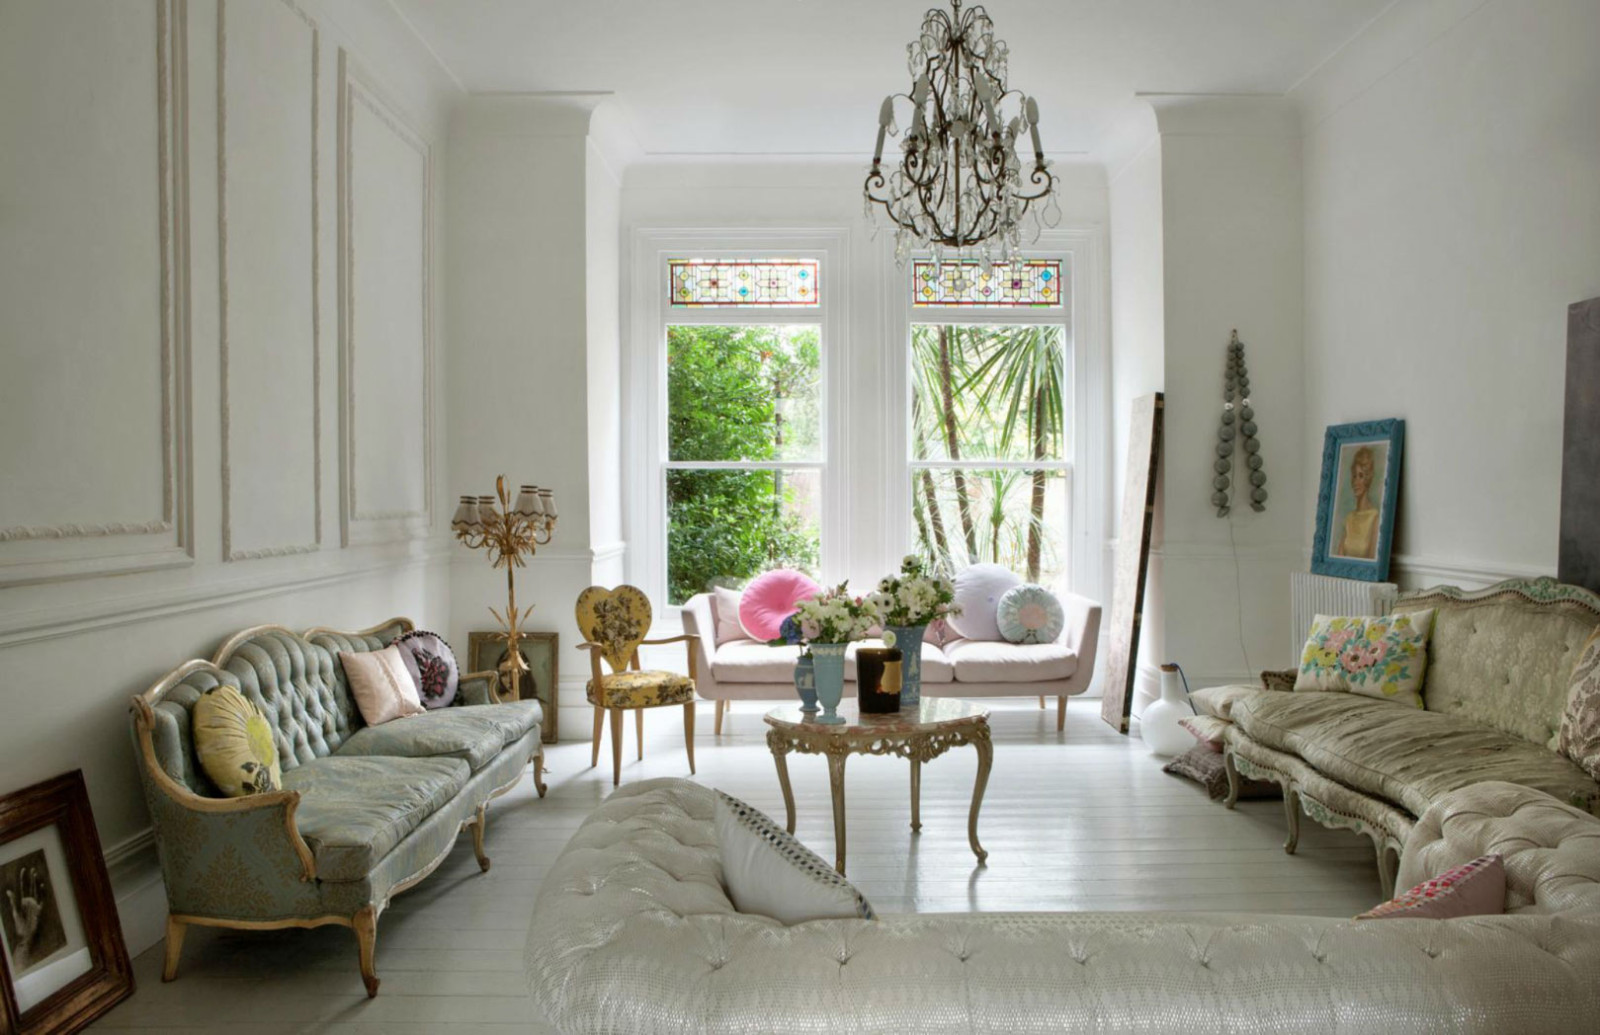 Mapesbury road chez la styliste anglaise marianne cotterill for Style deco interieur